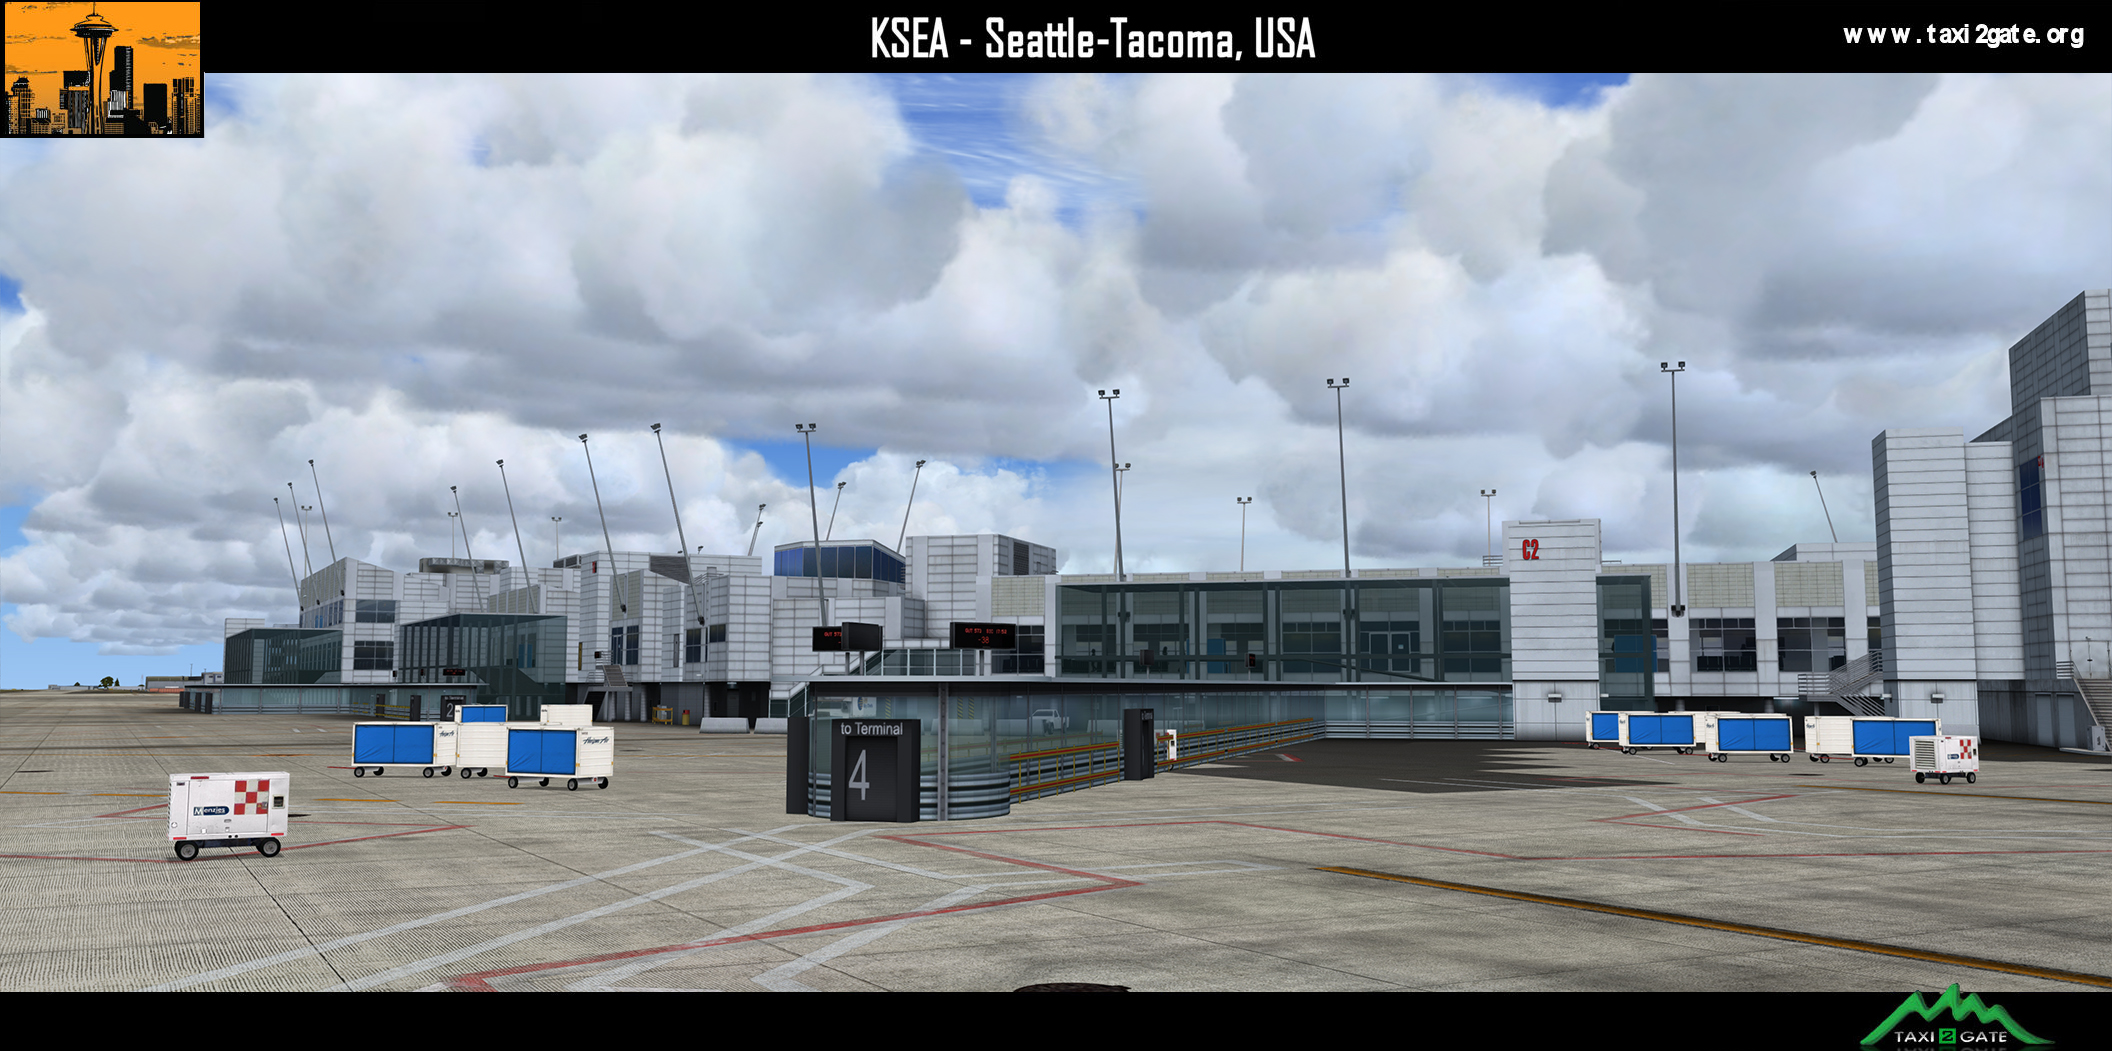 TAXI2GATE - SEATTLE-TACOMA INTERNATIONAL AIRPORT KSEA P3D4